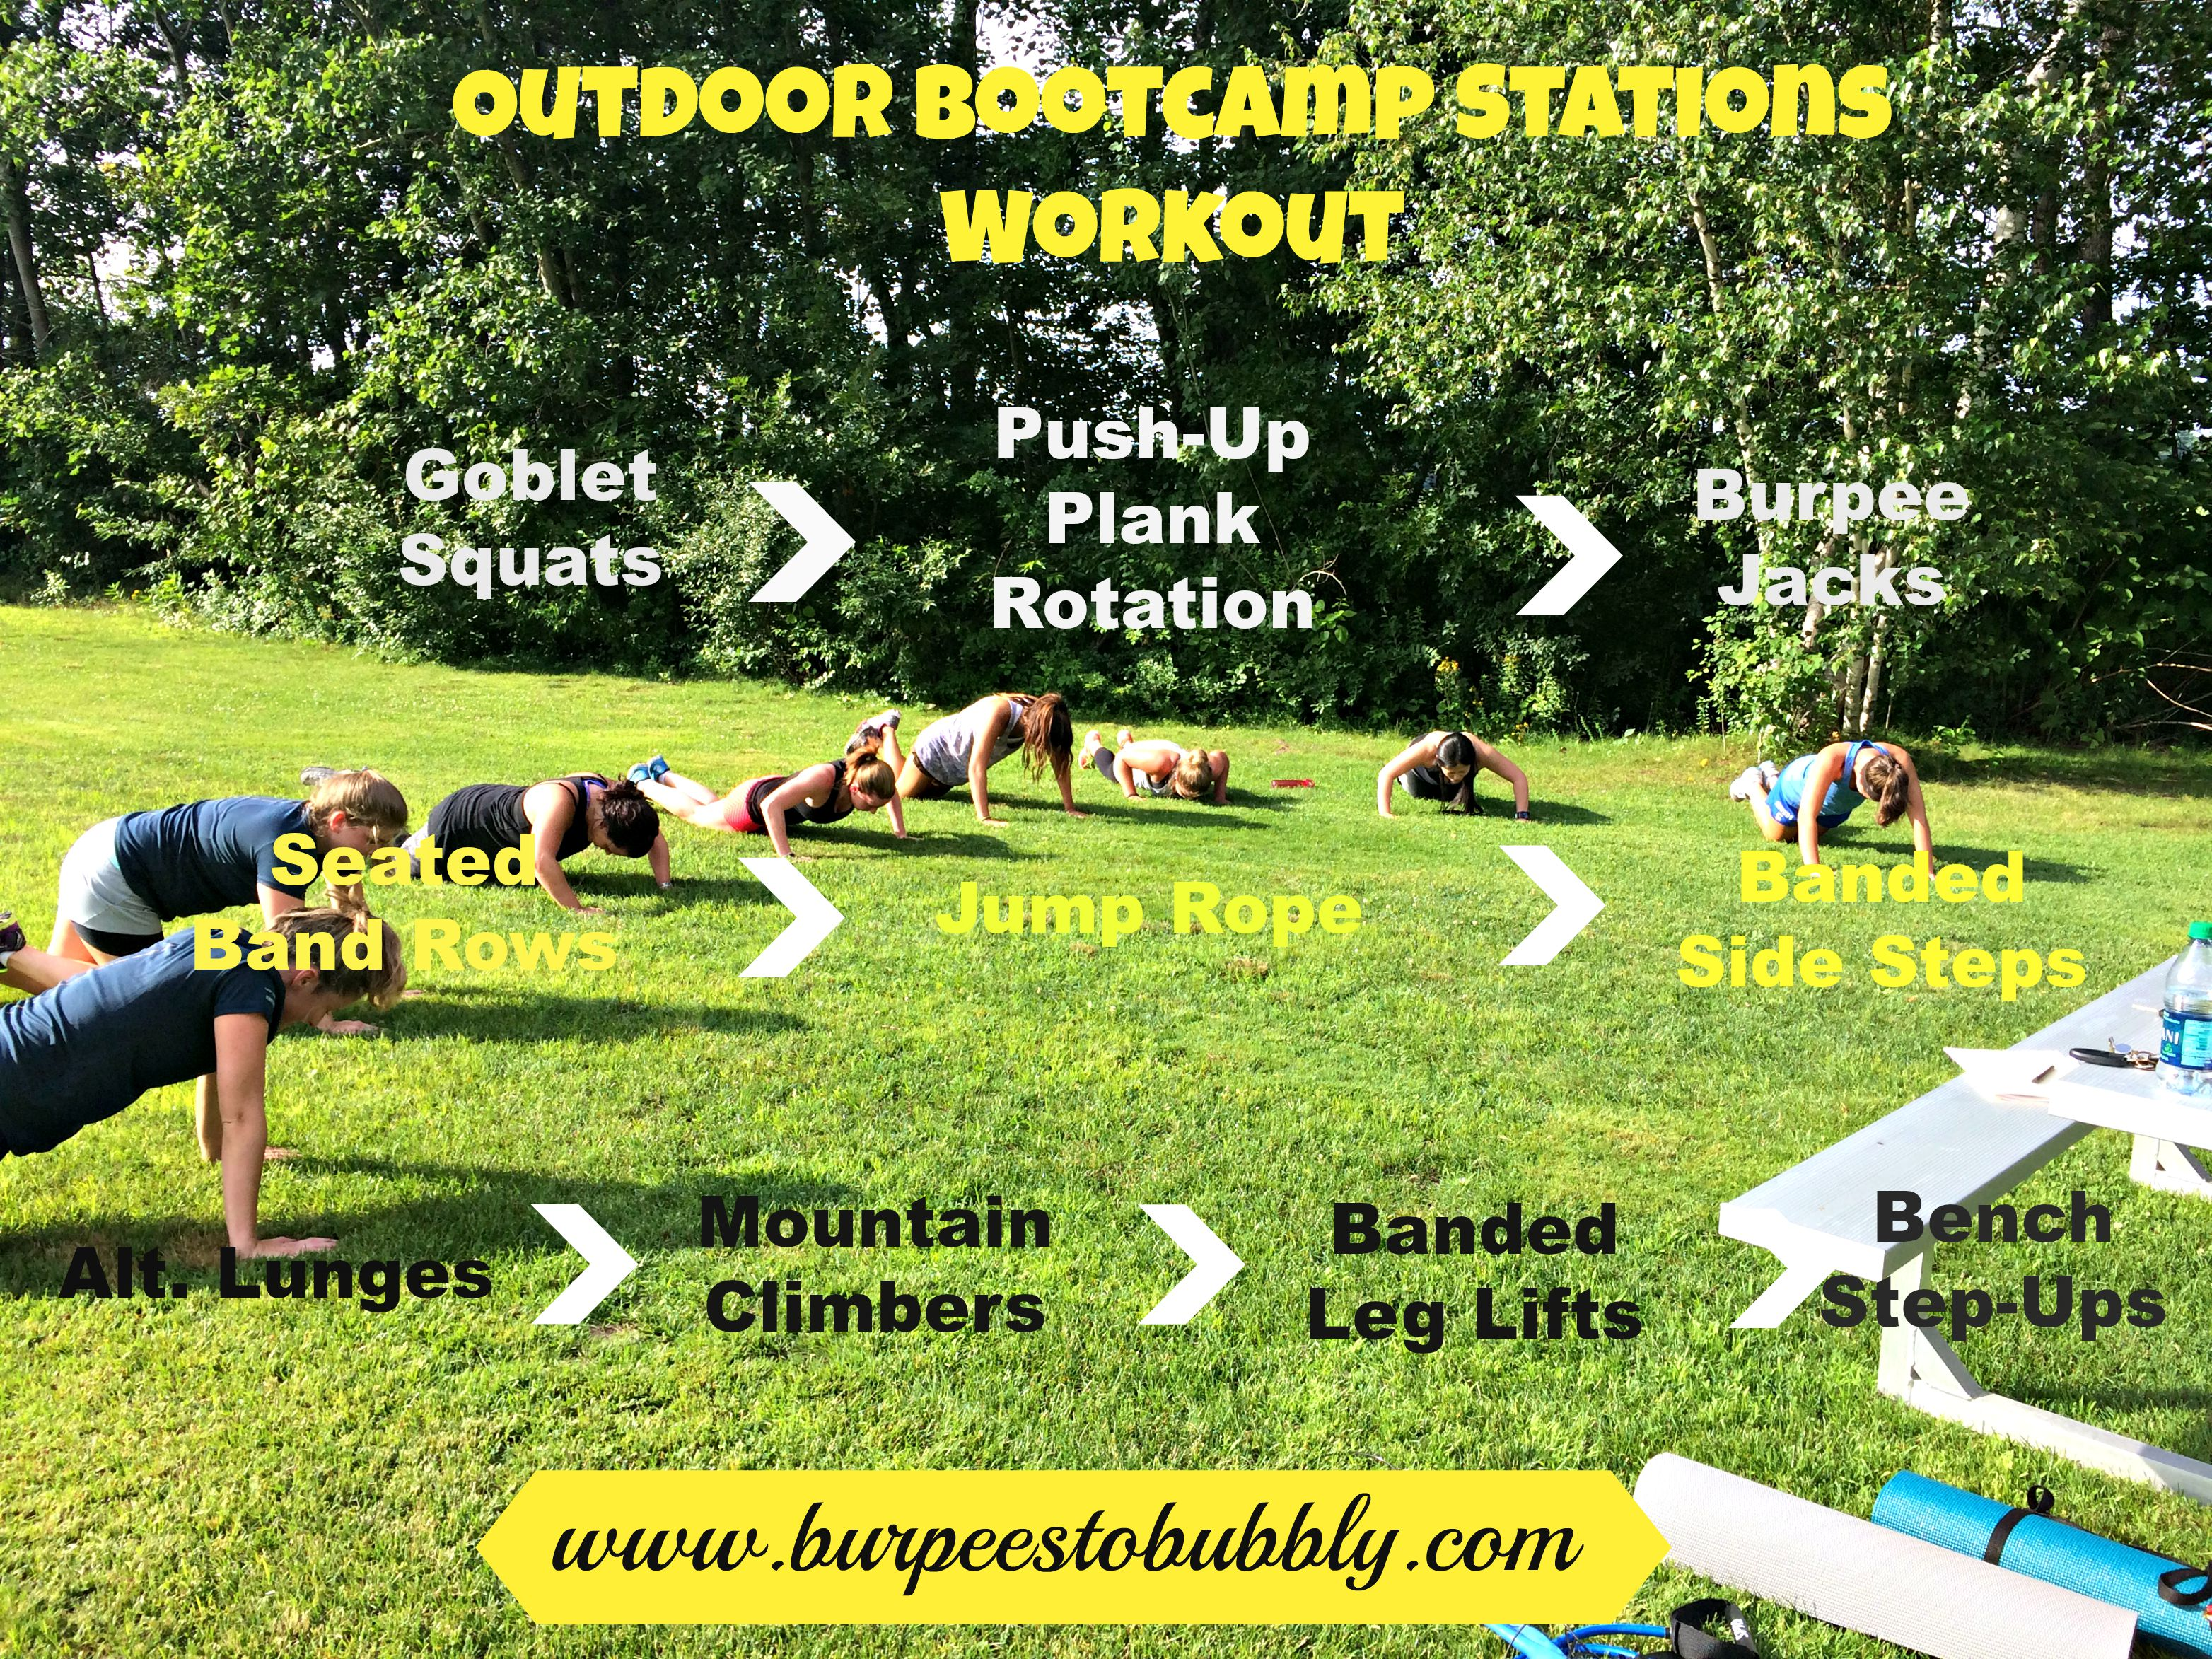 wednesday workout: outdoor bootcamp stations workout – burpees to bubbly